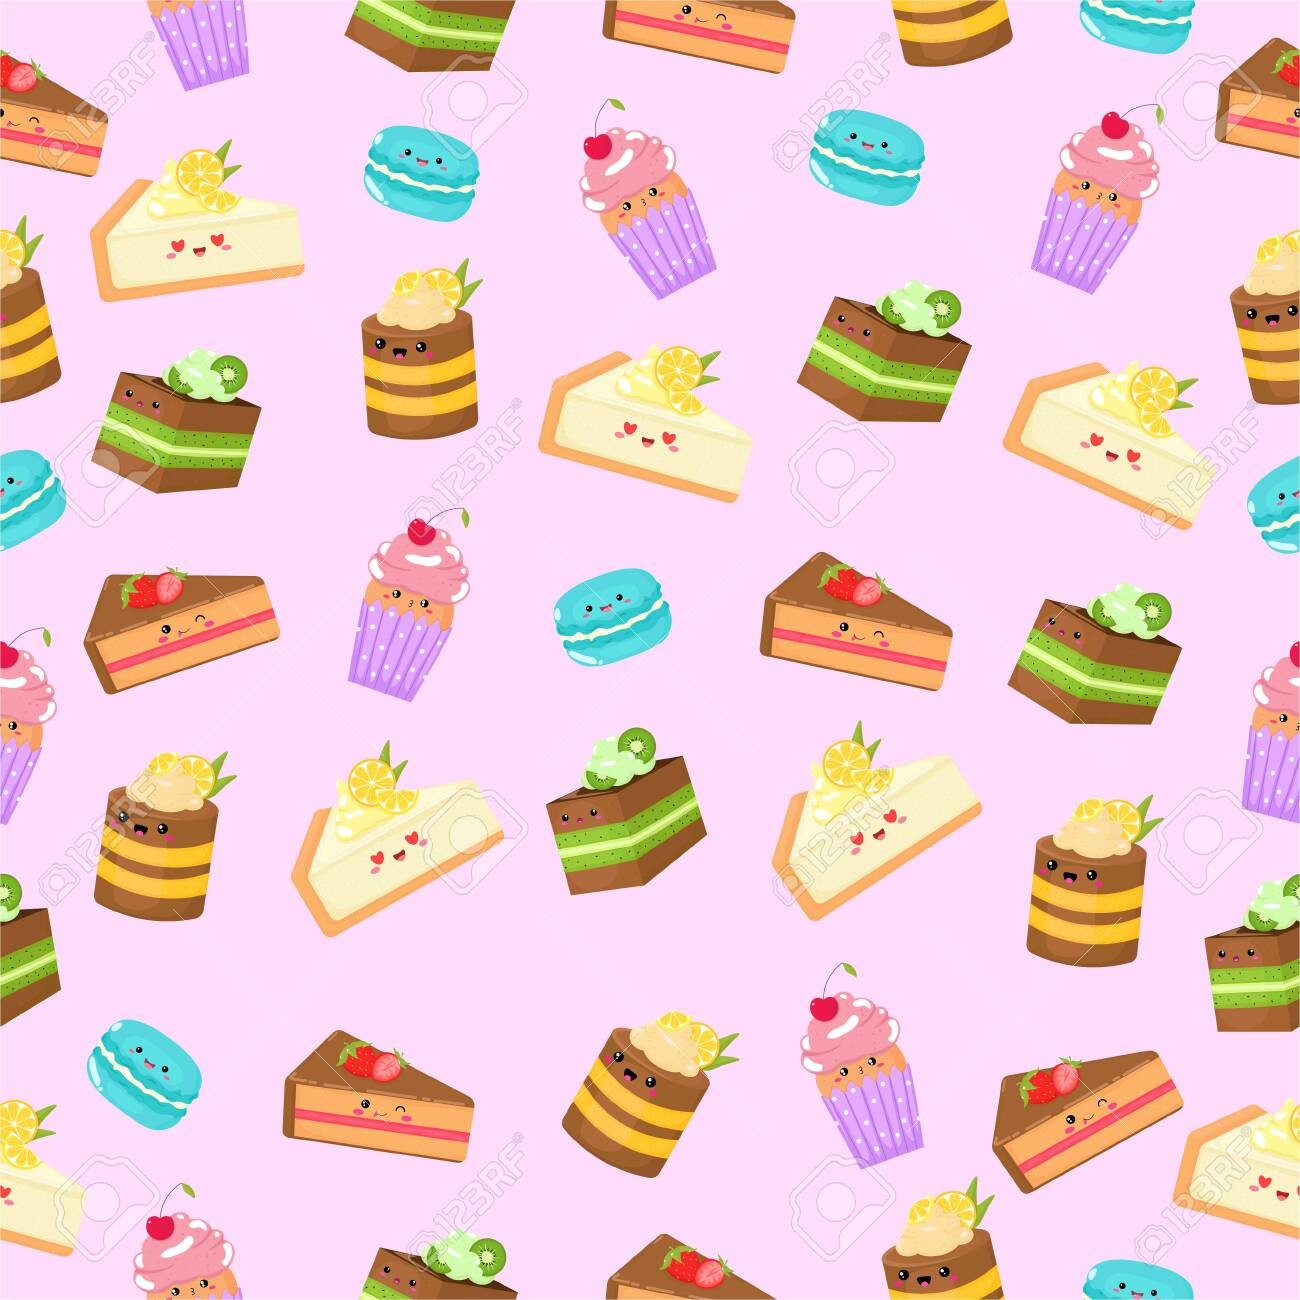 Vector graphics. Cute pattern with different sweet pastries. Funny cartoon characters. Colorful pattern. - 133980046